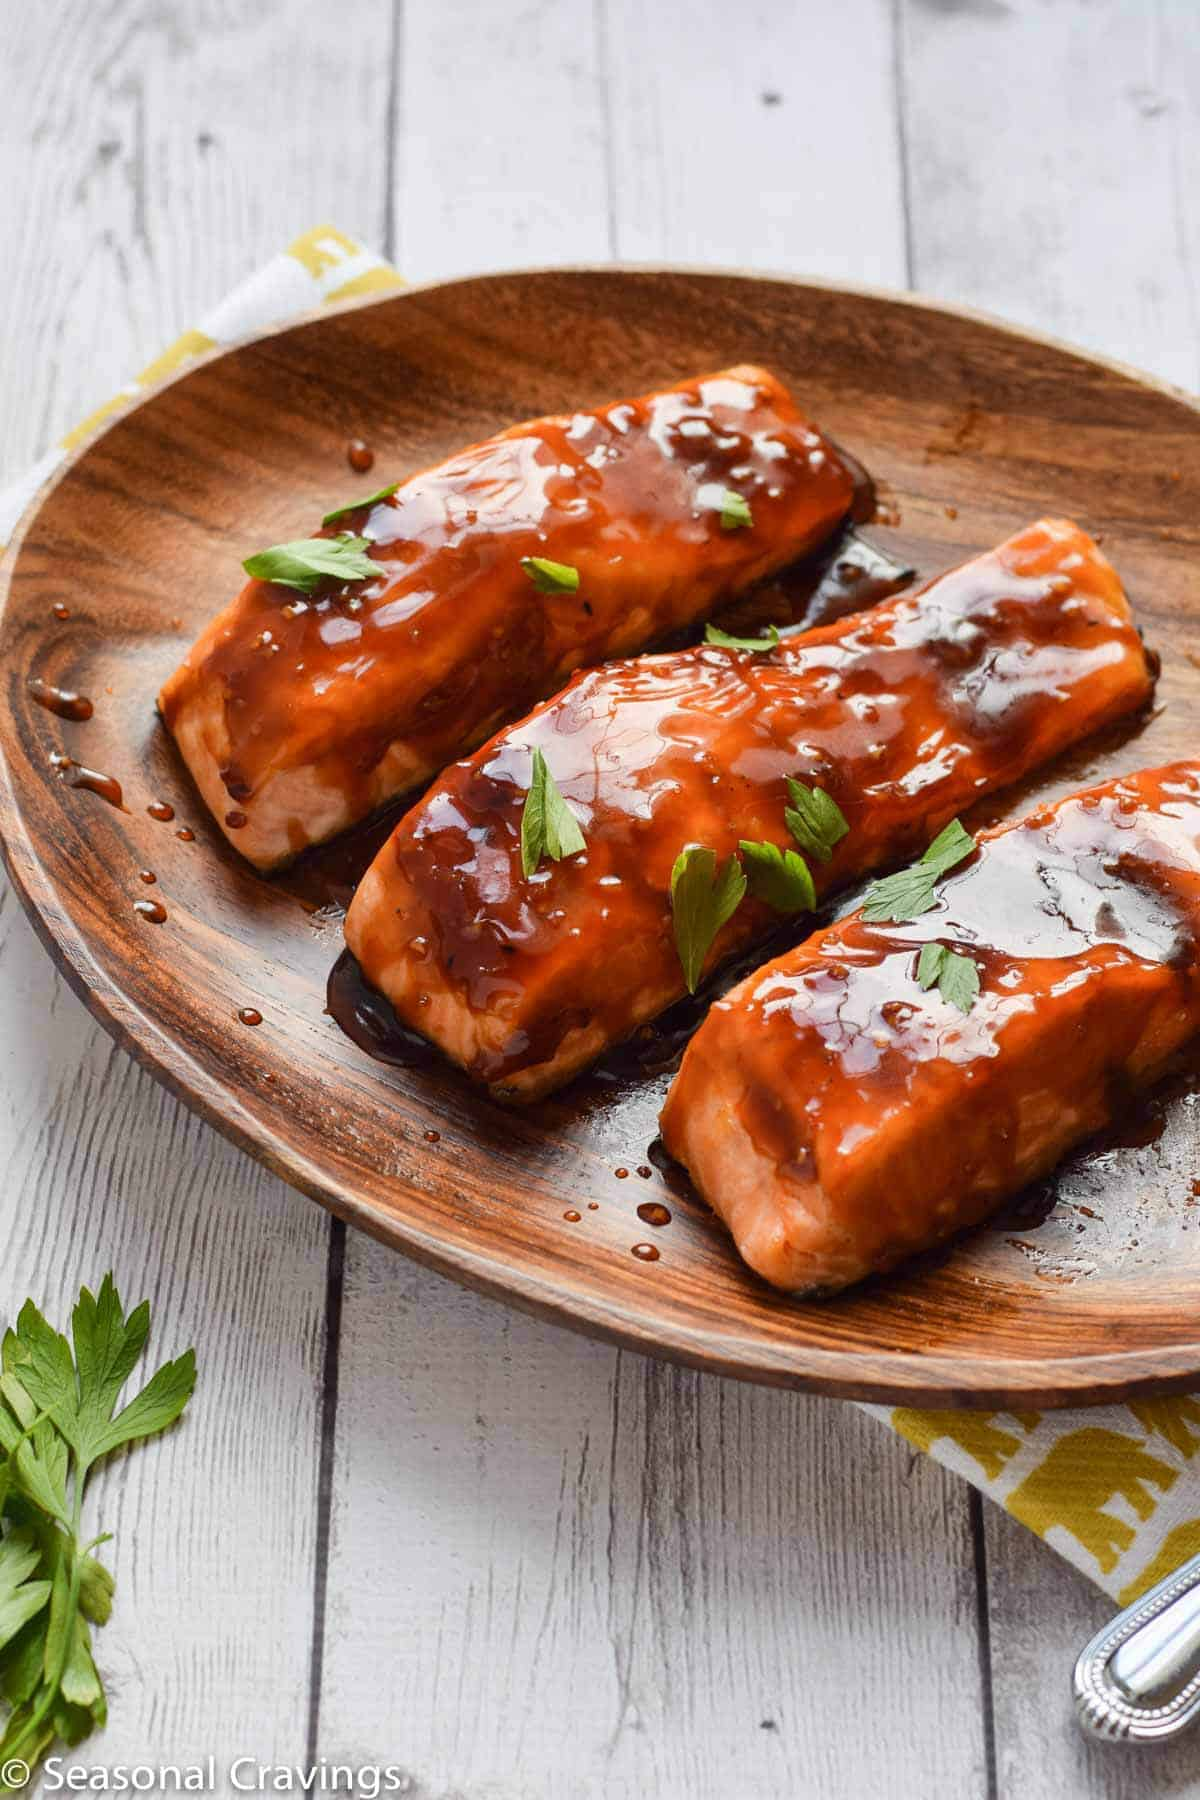 Baked Teriyaki Salmon with sweet sticky glaze on a wooden plate